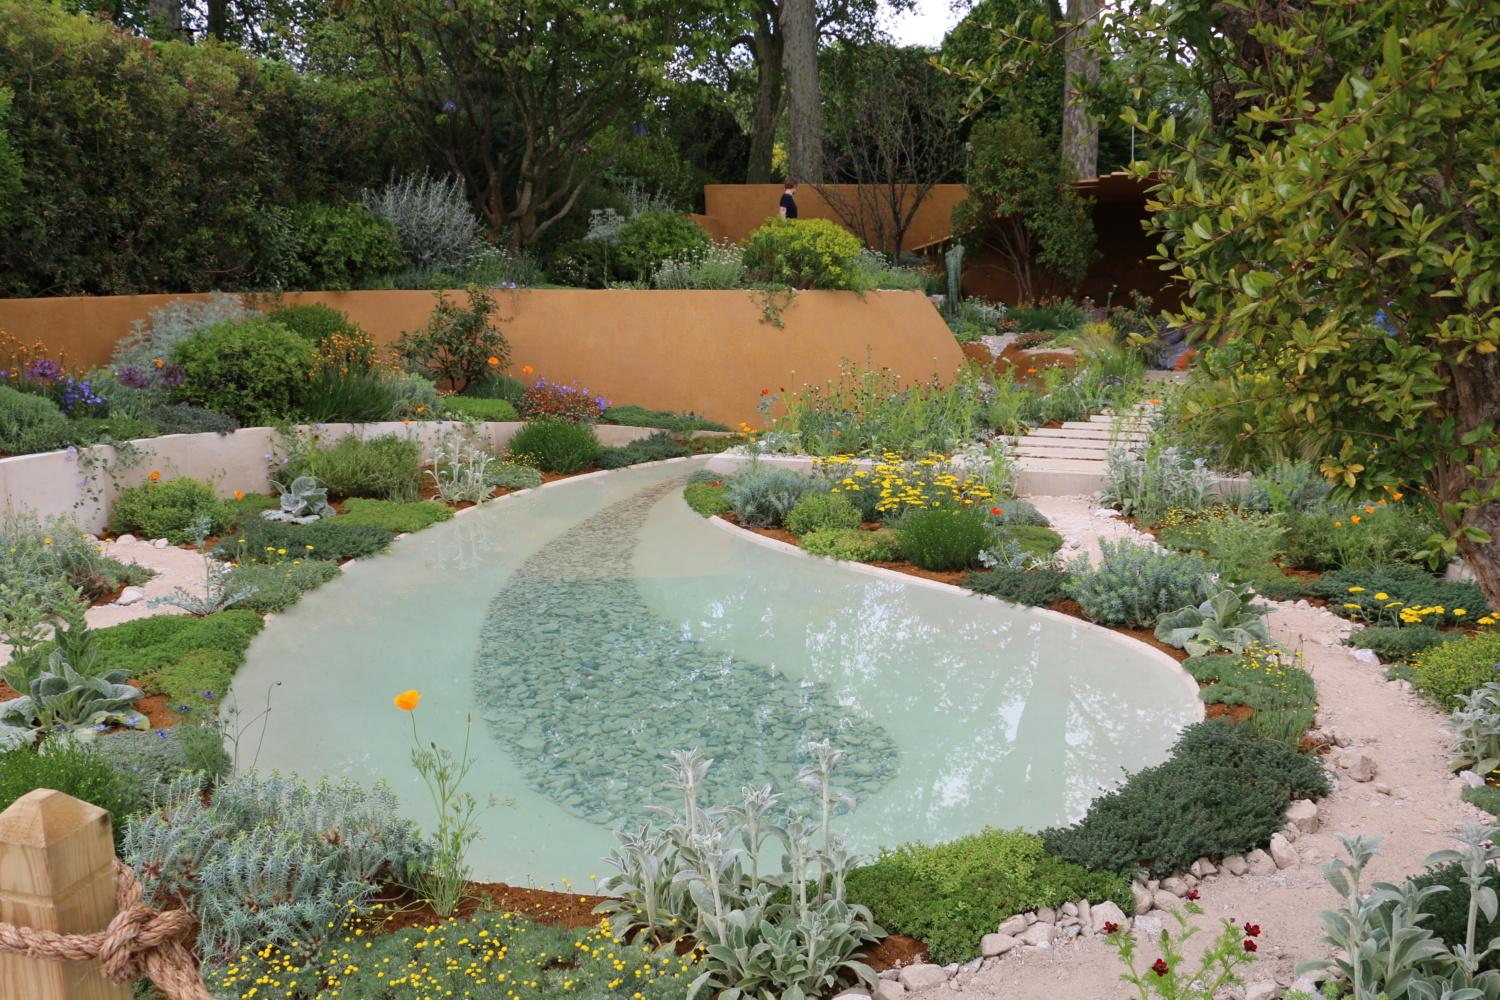 Flower display at Chelsea Flower Show 2019